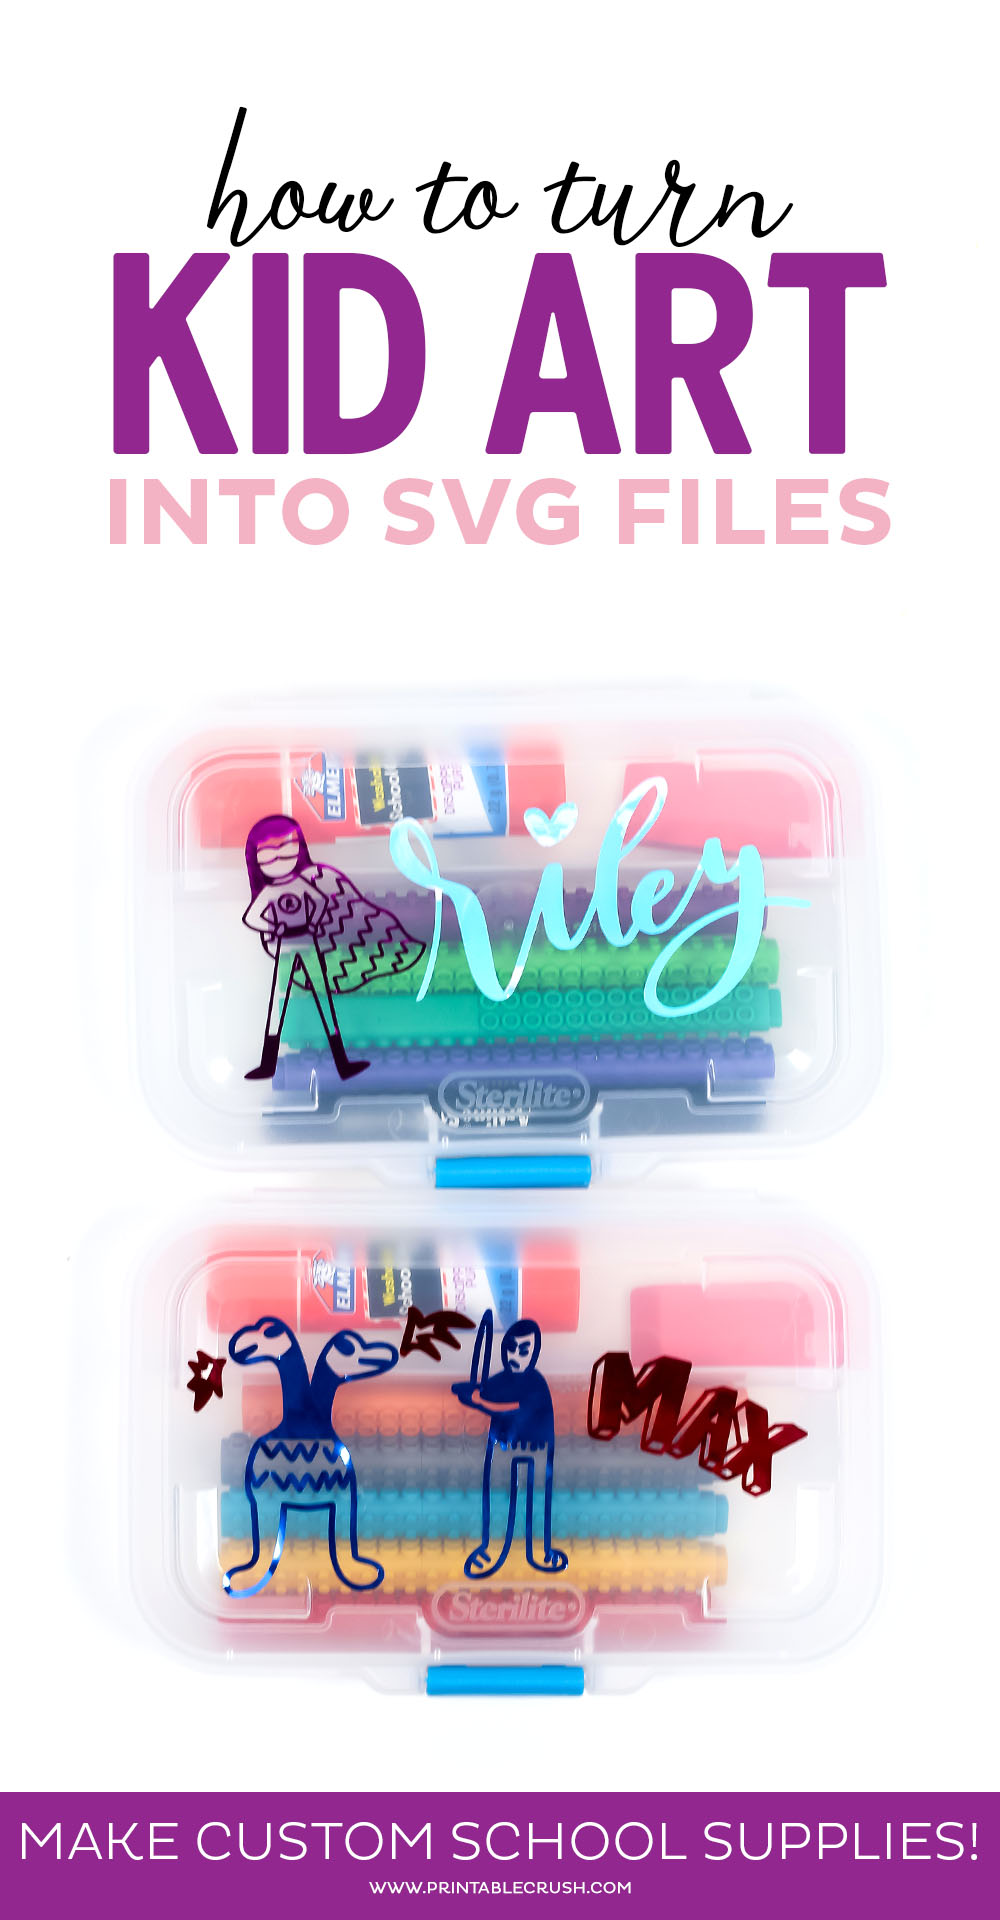 Create custom back to school supplies with vinyl by turning kid art into SVG files.